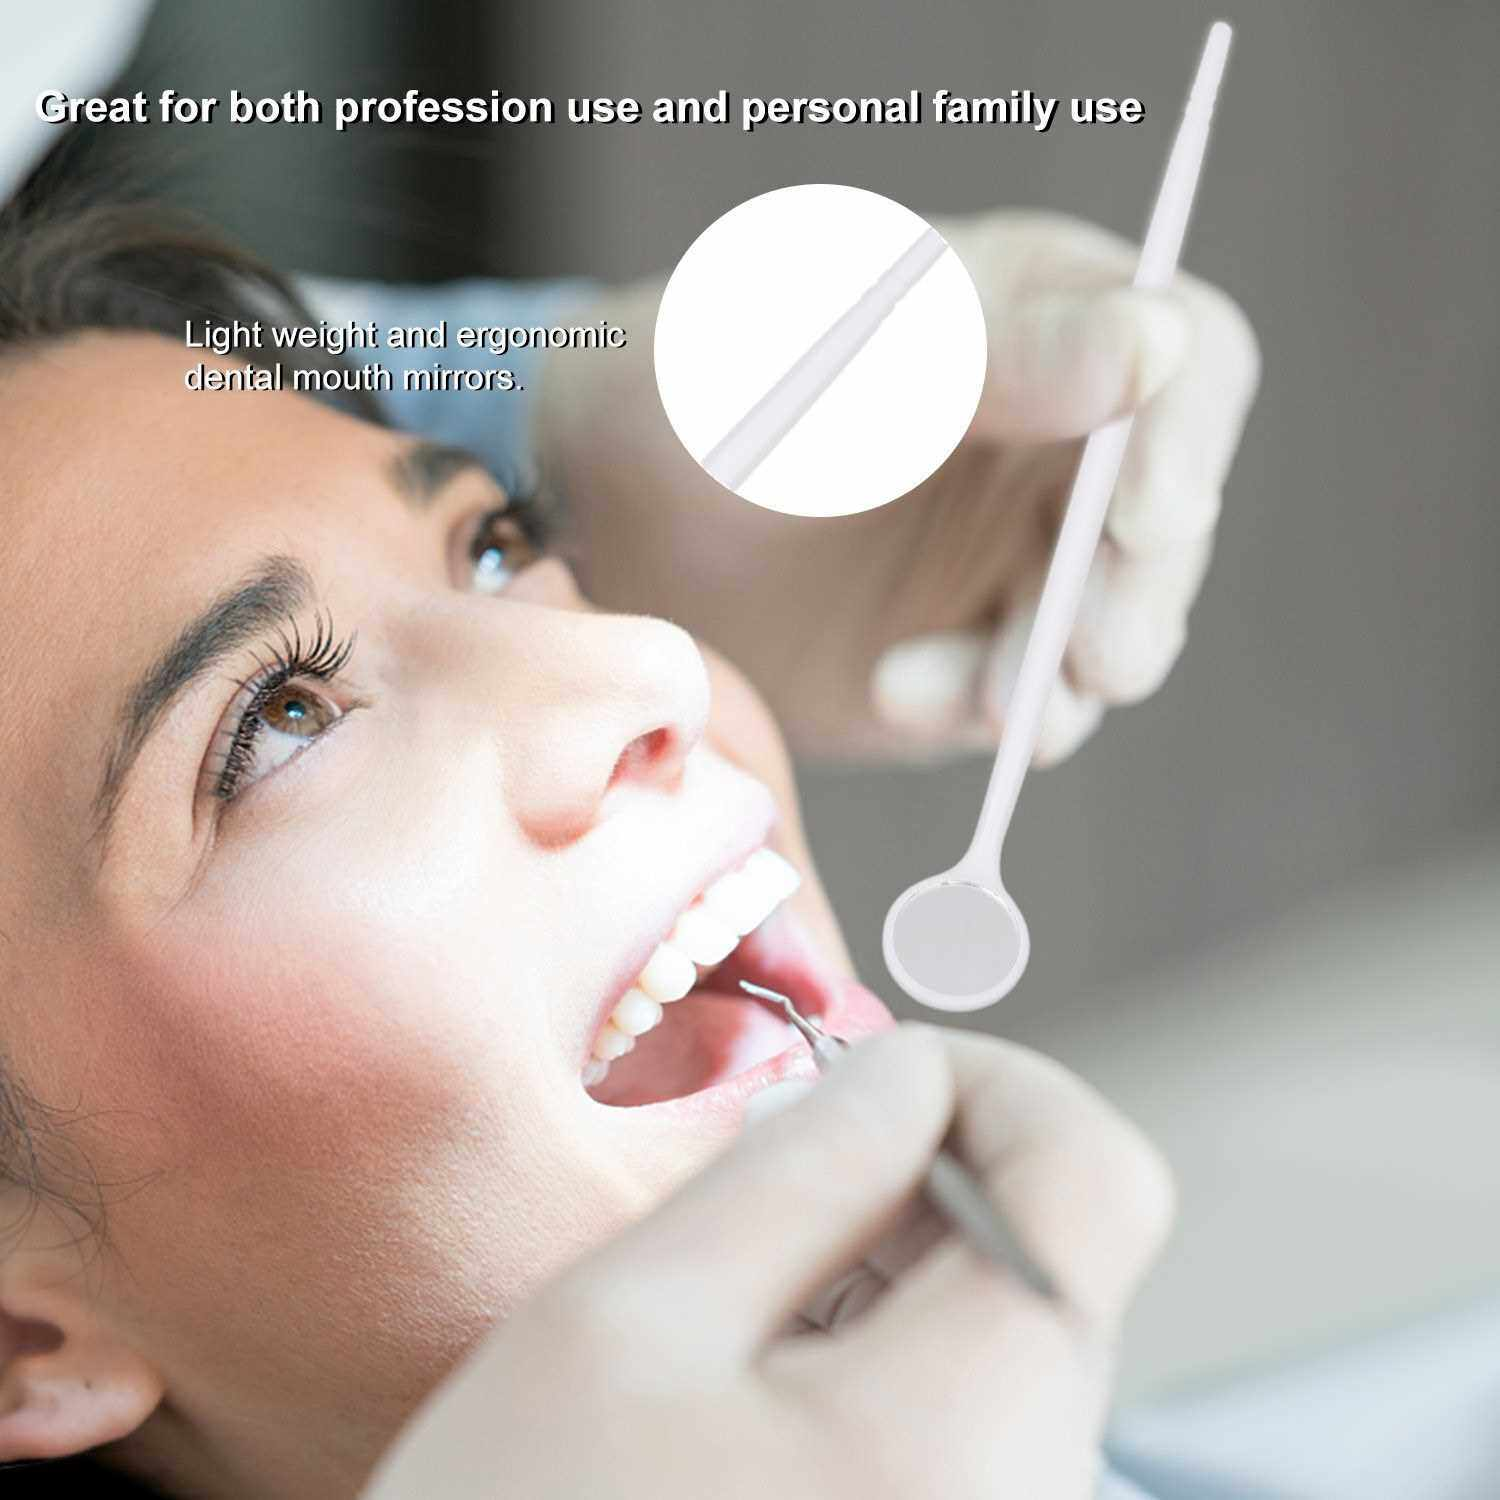 People's Choice 100pcs Disposable Mouth Exam Reflector Mirrors Plastic Anti-fog Lens Dental Tooth Whitening Instrument Oral Hygiene Care Tool (White)